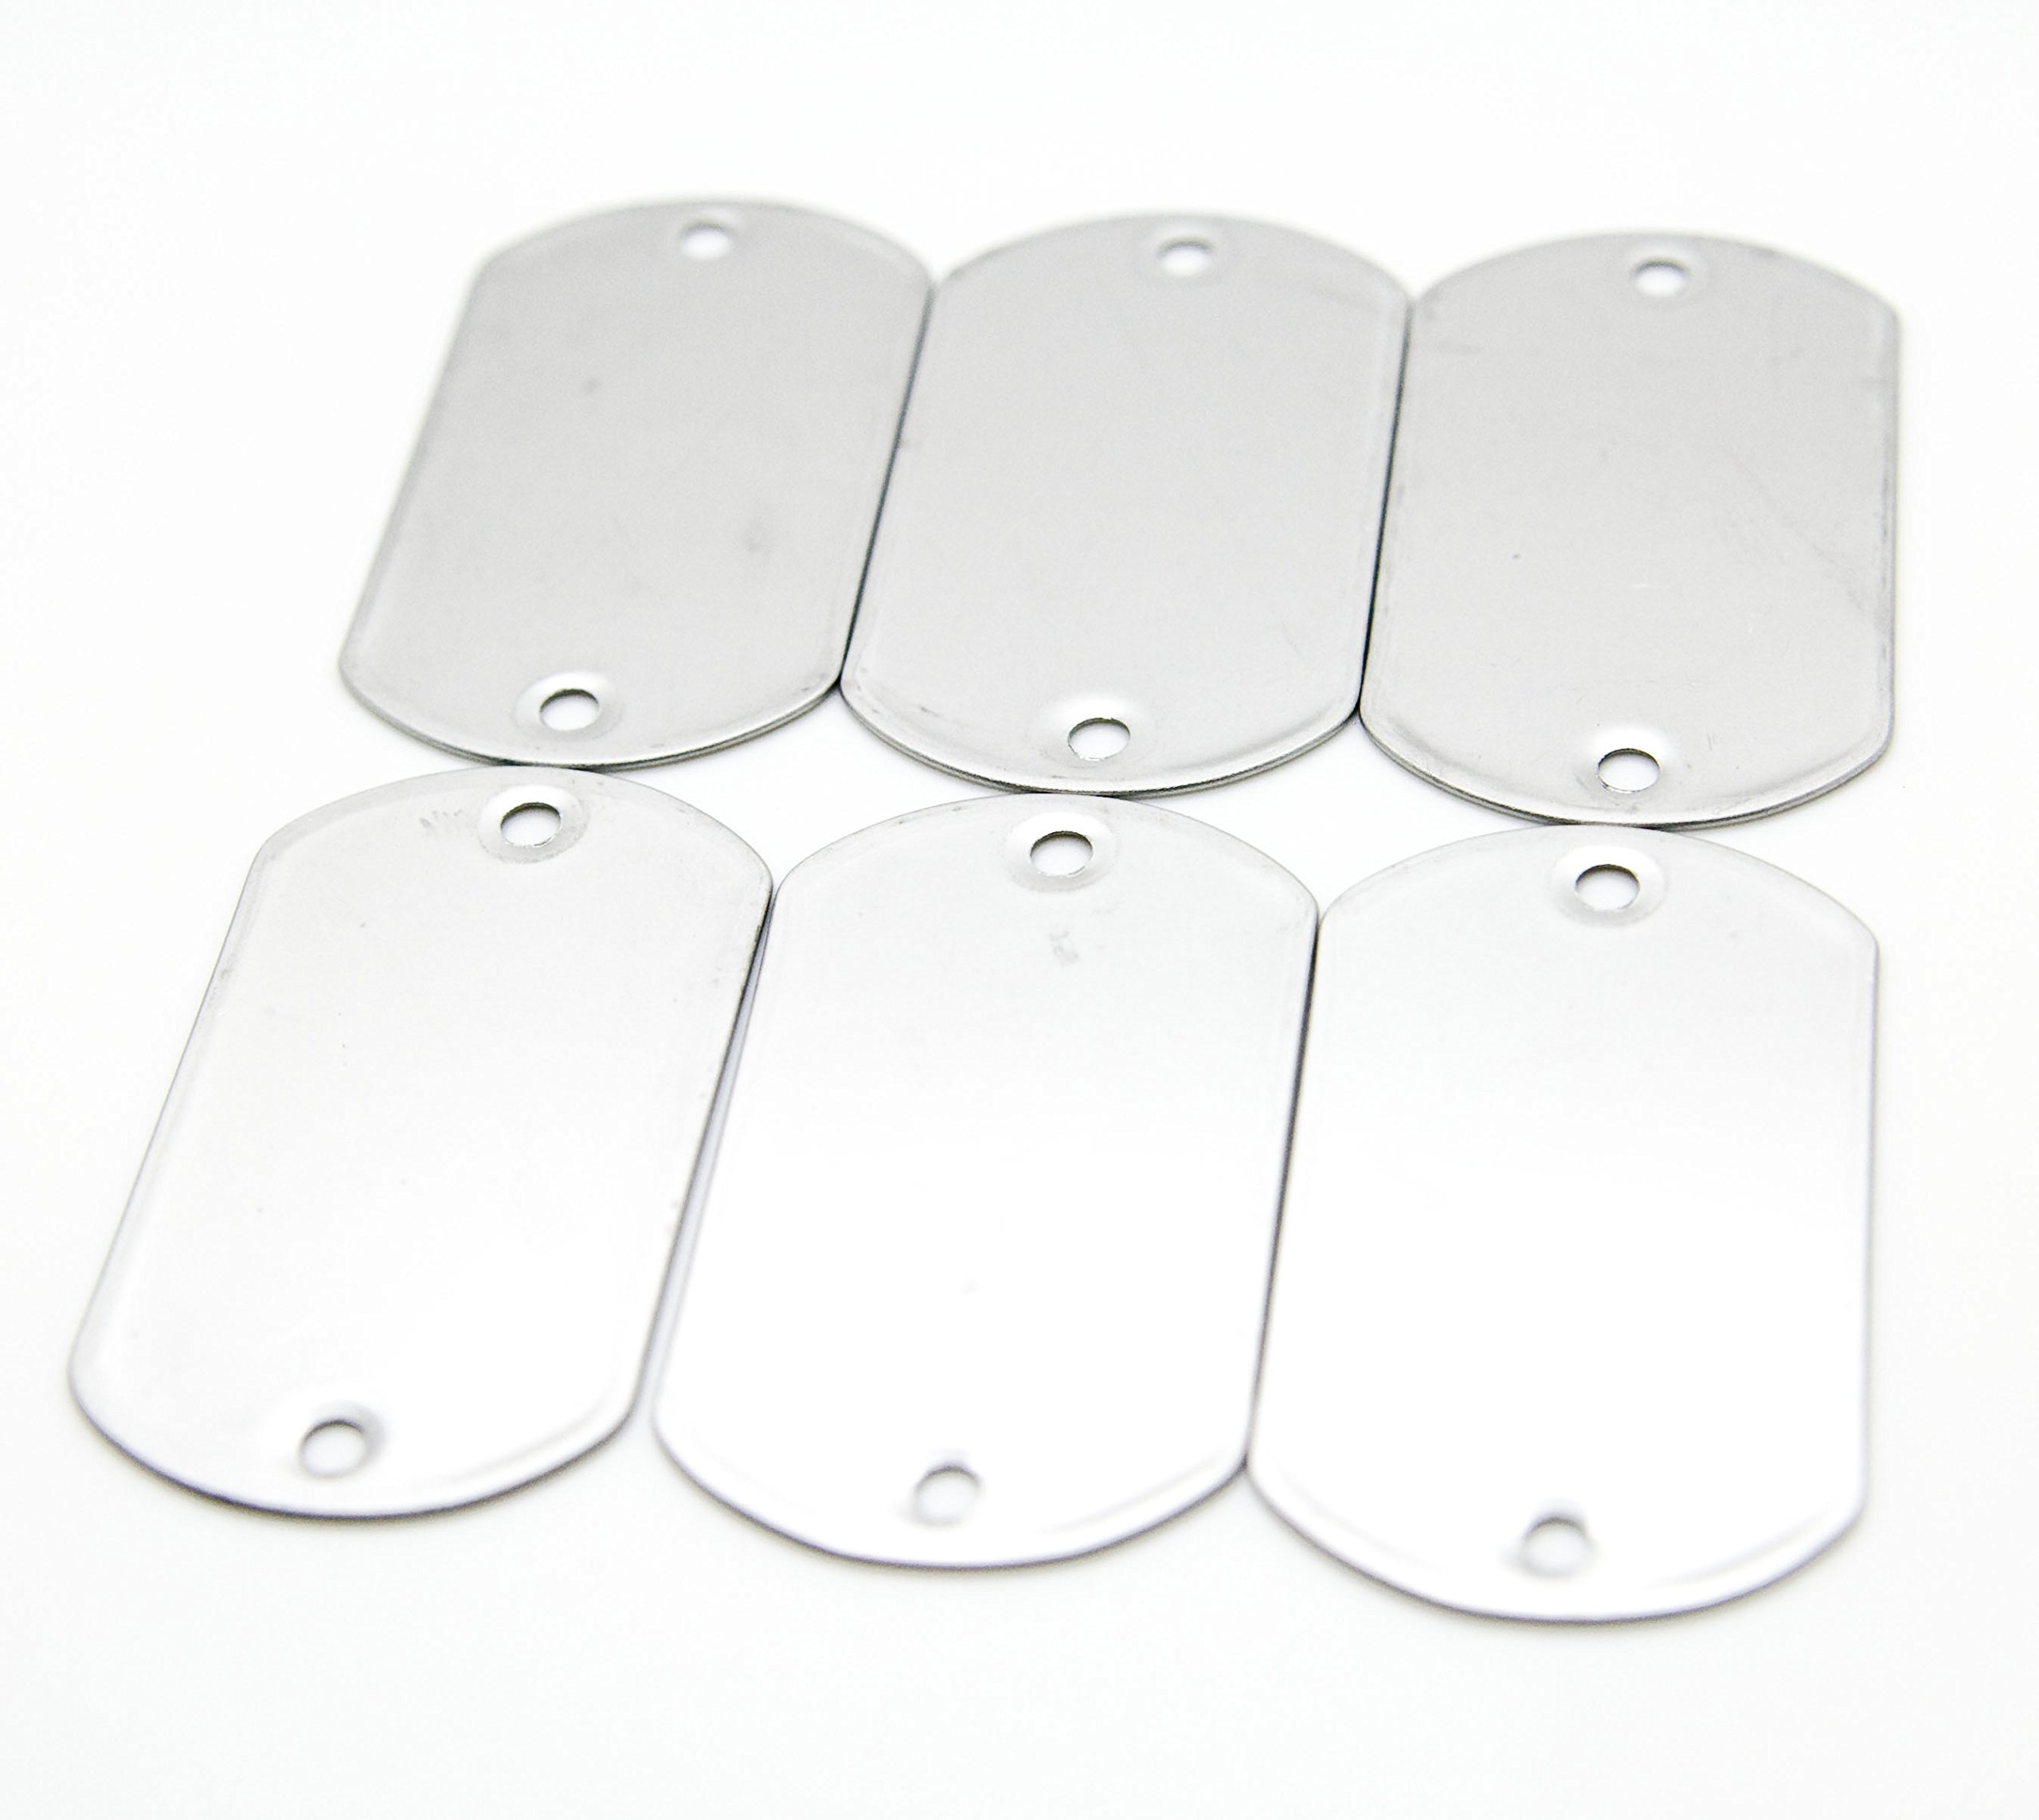 100pcs Blank 2-Hole Matte Finish Stainless Steel Military Spec Dog Tags Rolled Edge Backing